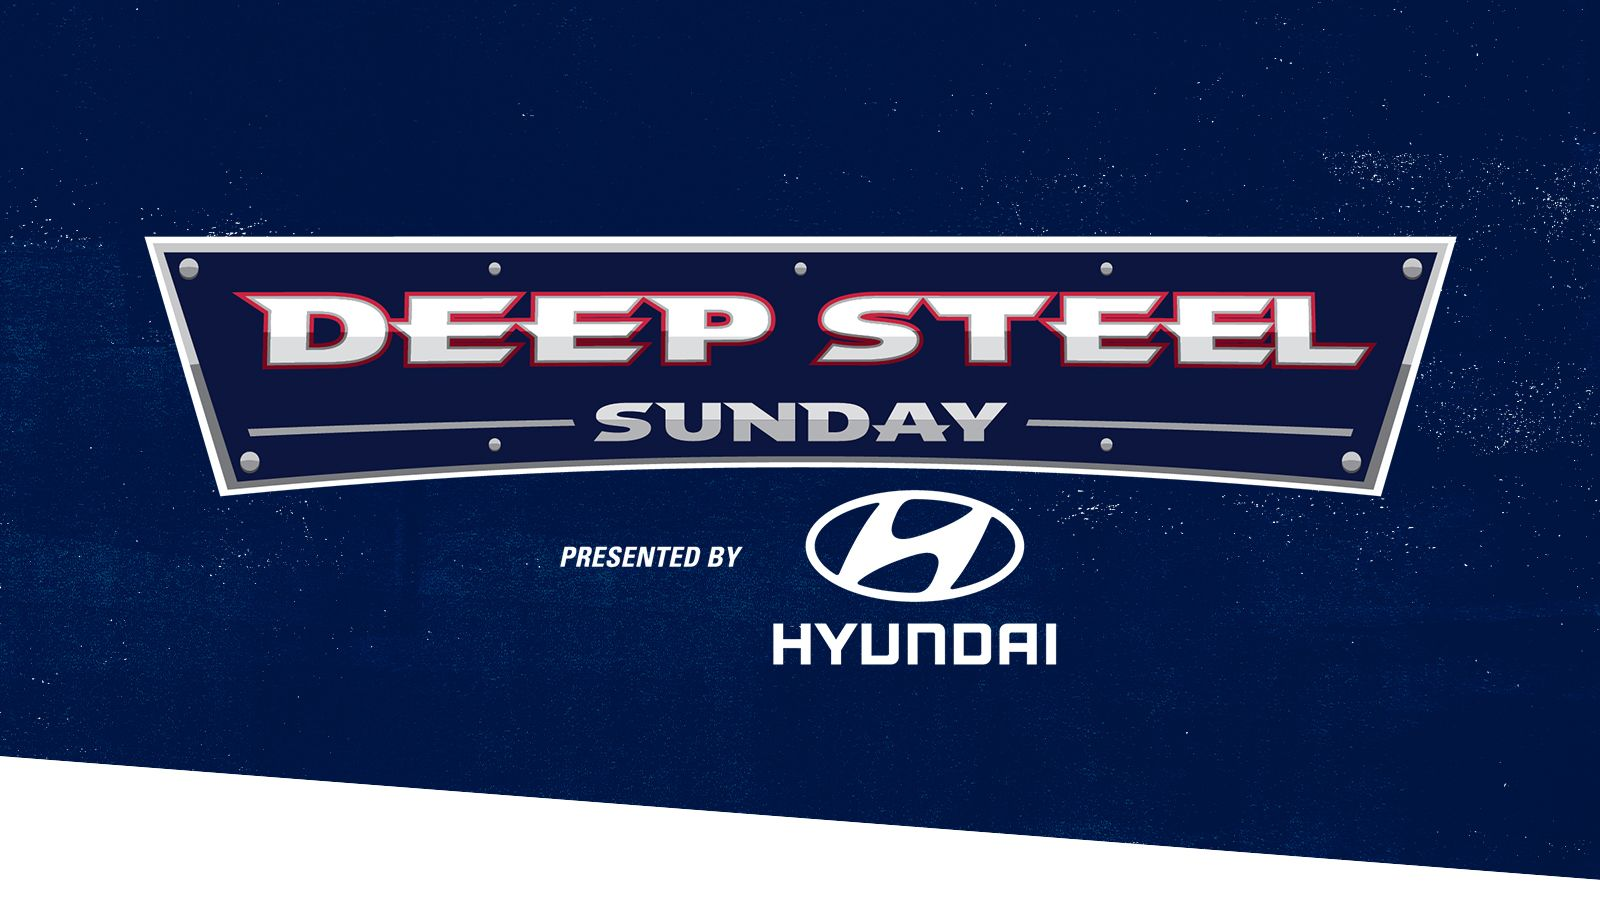 Deep Steel Sunday presented by Hyundai